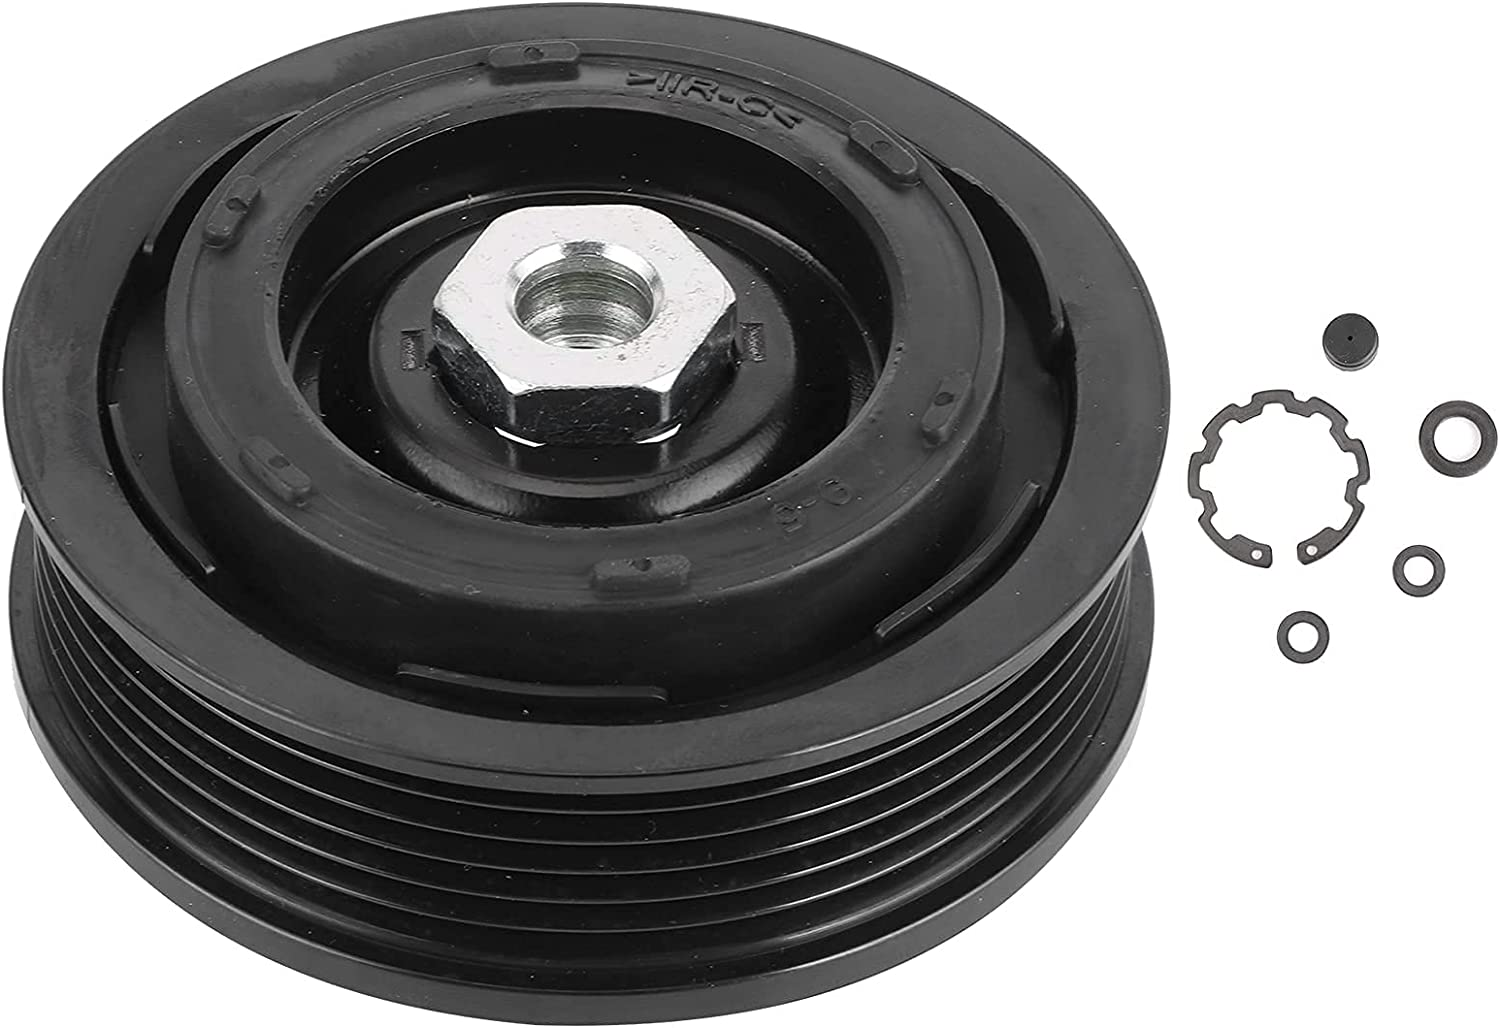 LIXFDJ 6PK Air Conditioning Compressor Special price for a limited time Clu Directly managed store A Clutch C